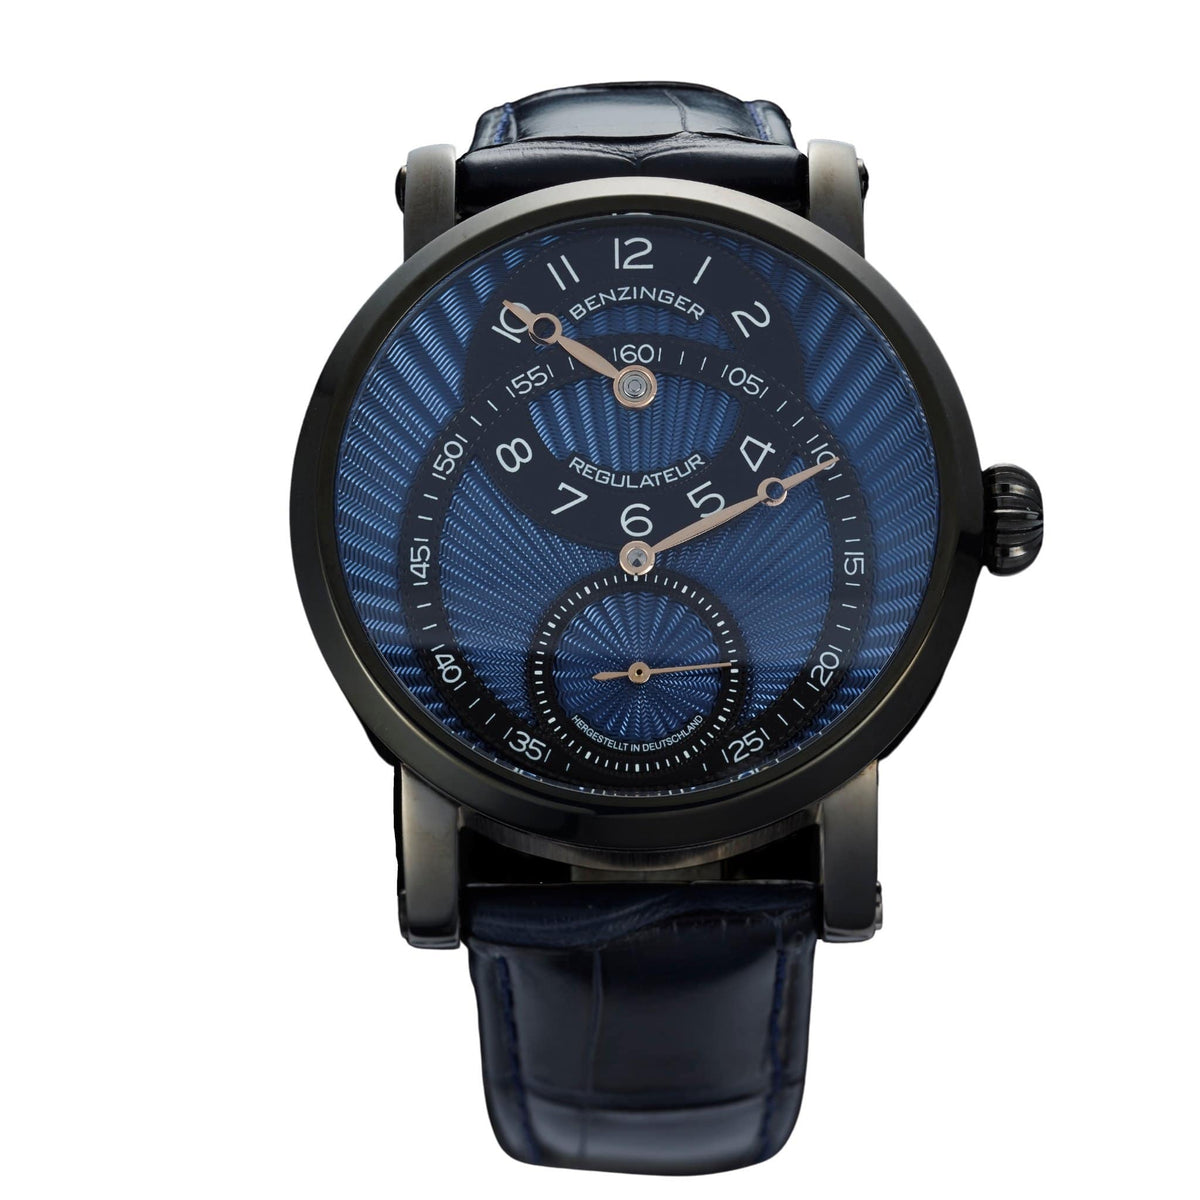 Regulator Blue Black 42mm von Jochen Benzinger - MANUFAKTURWERK